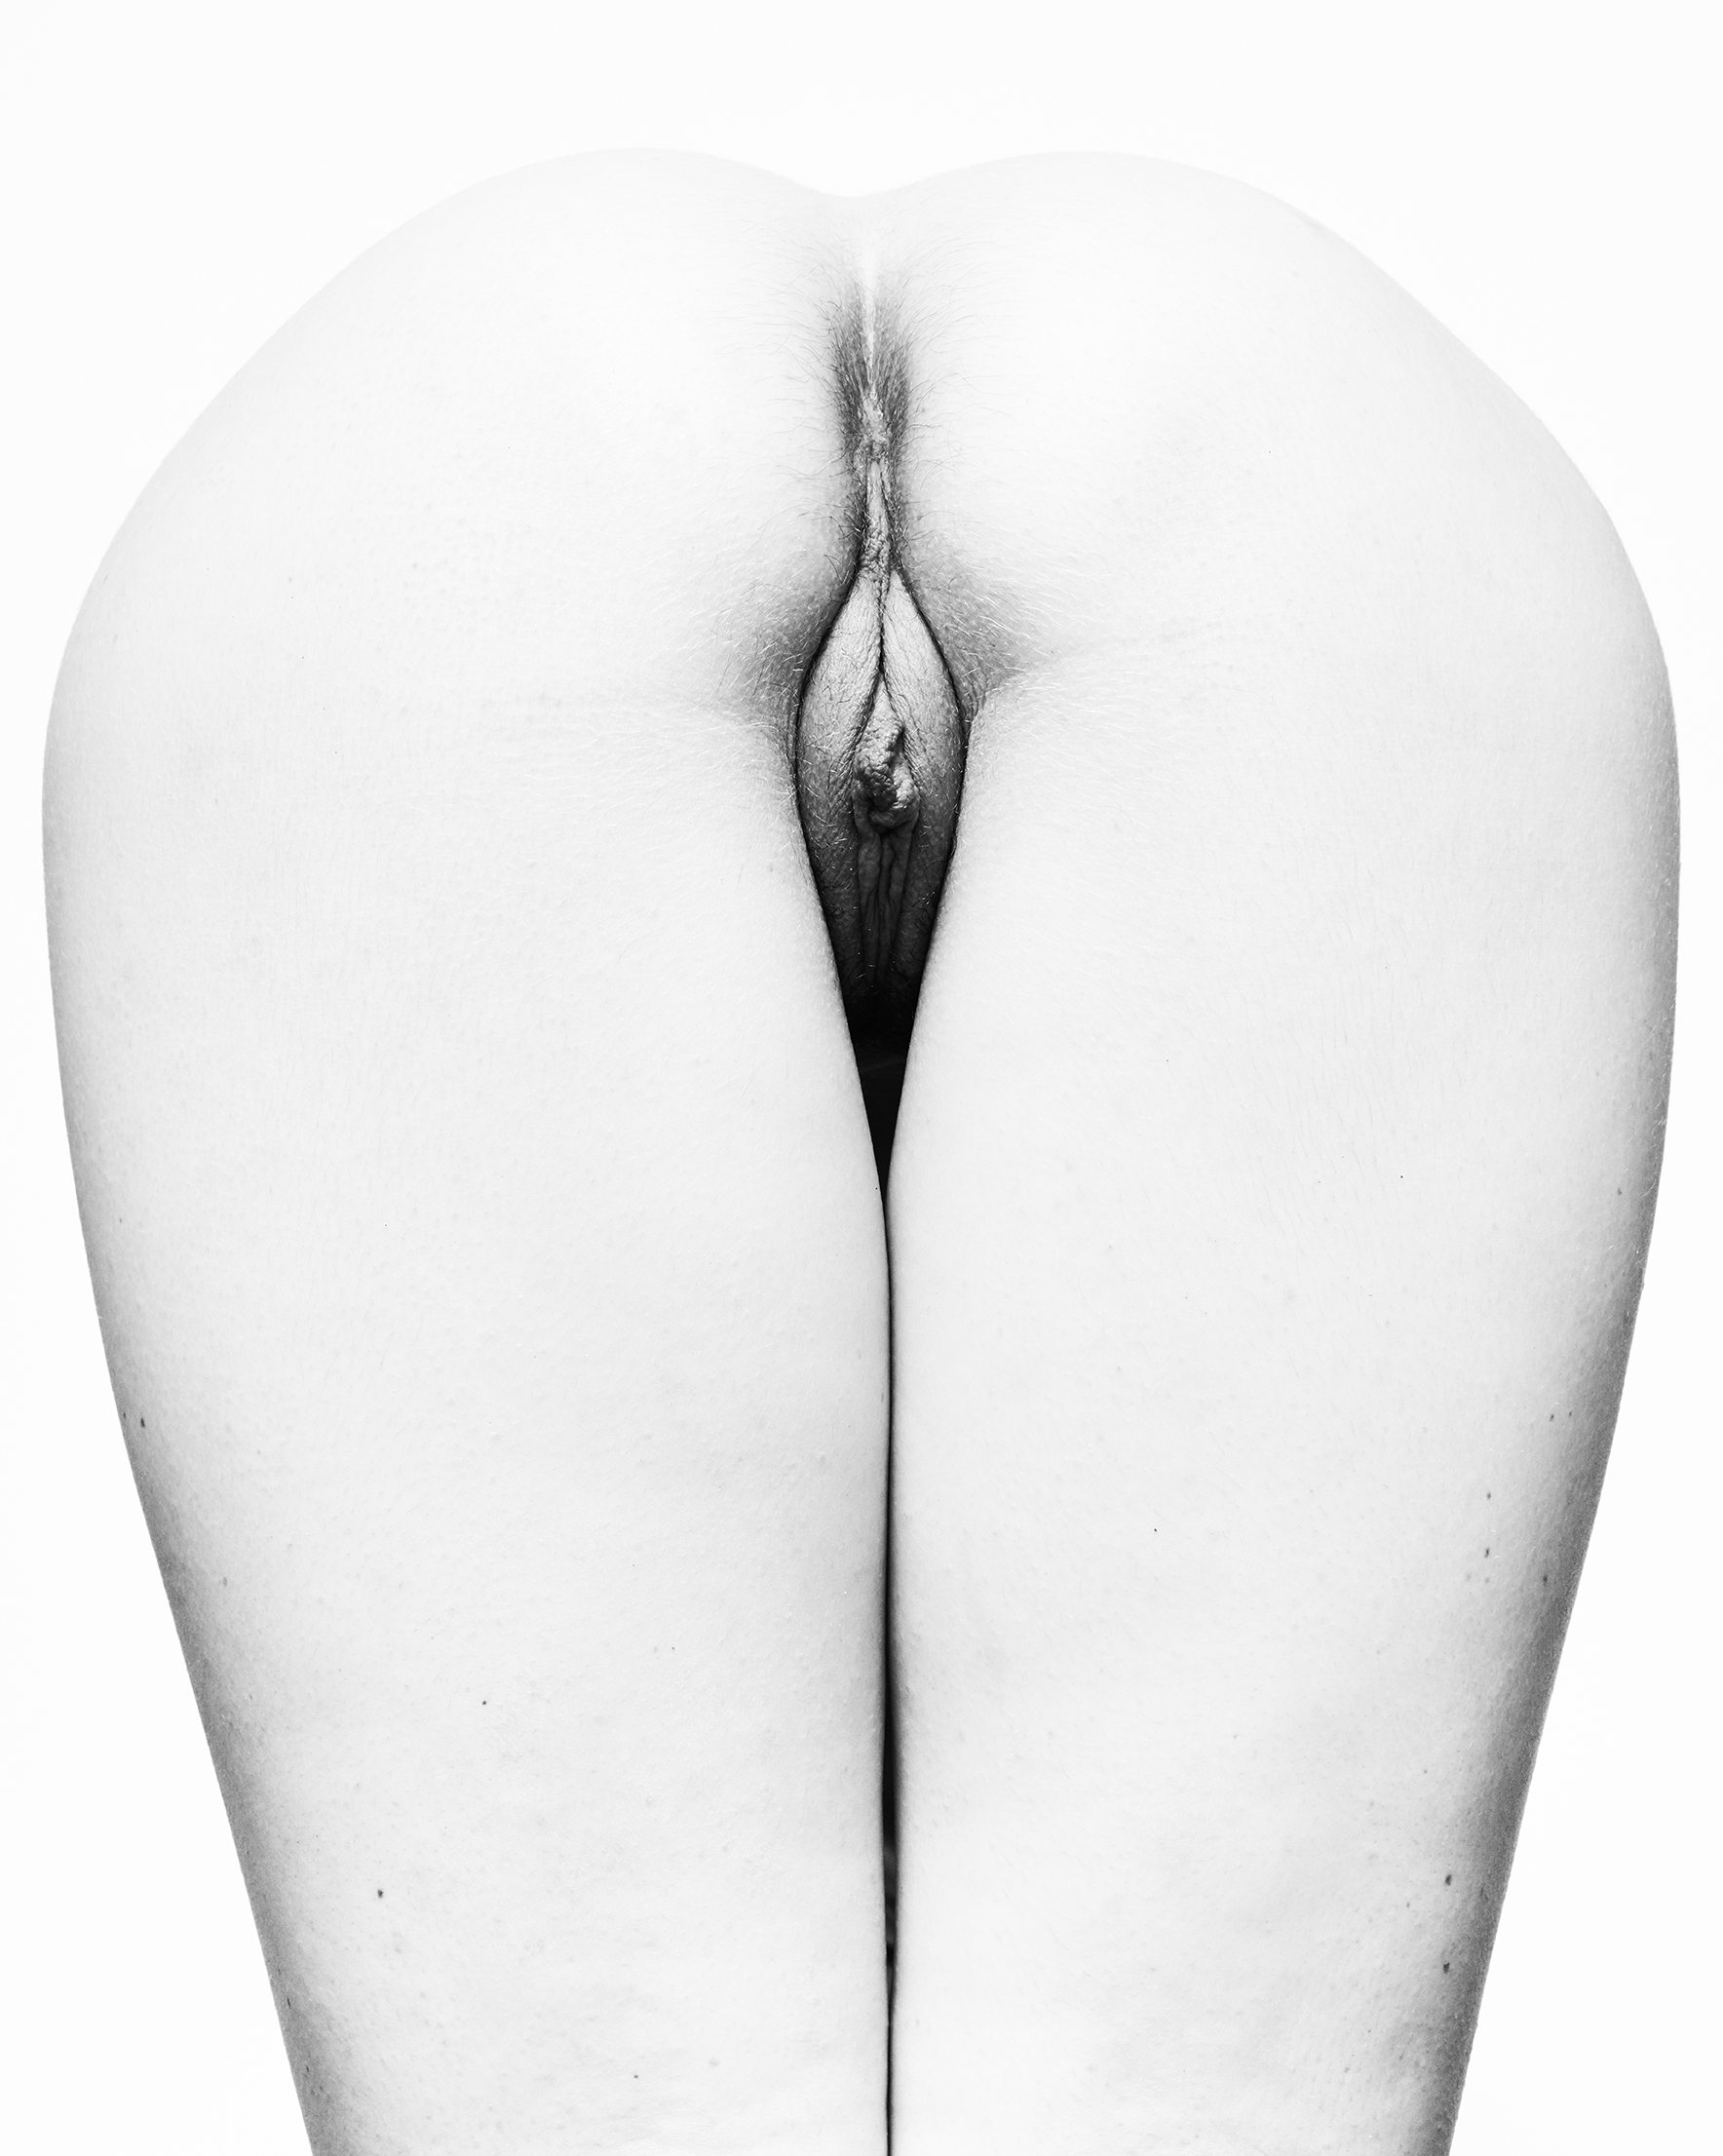 151130_BodyScapes_090_F.jpg